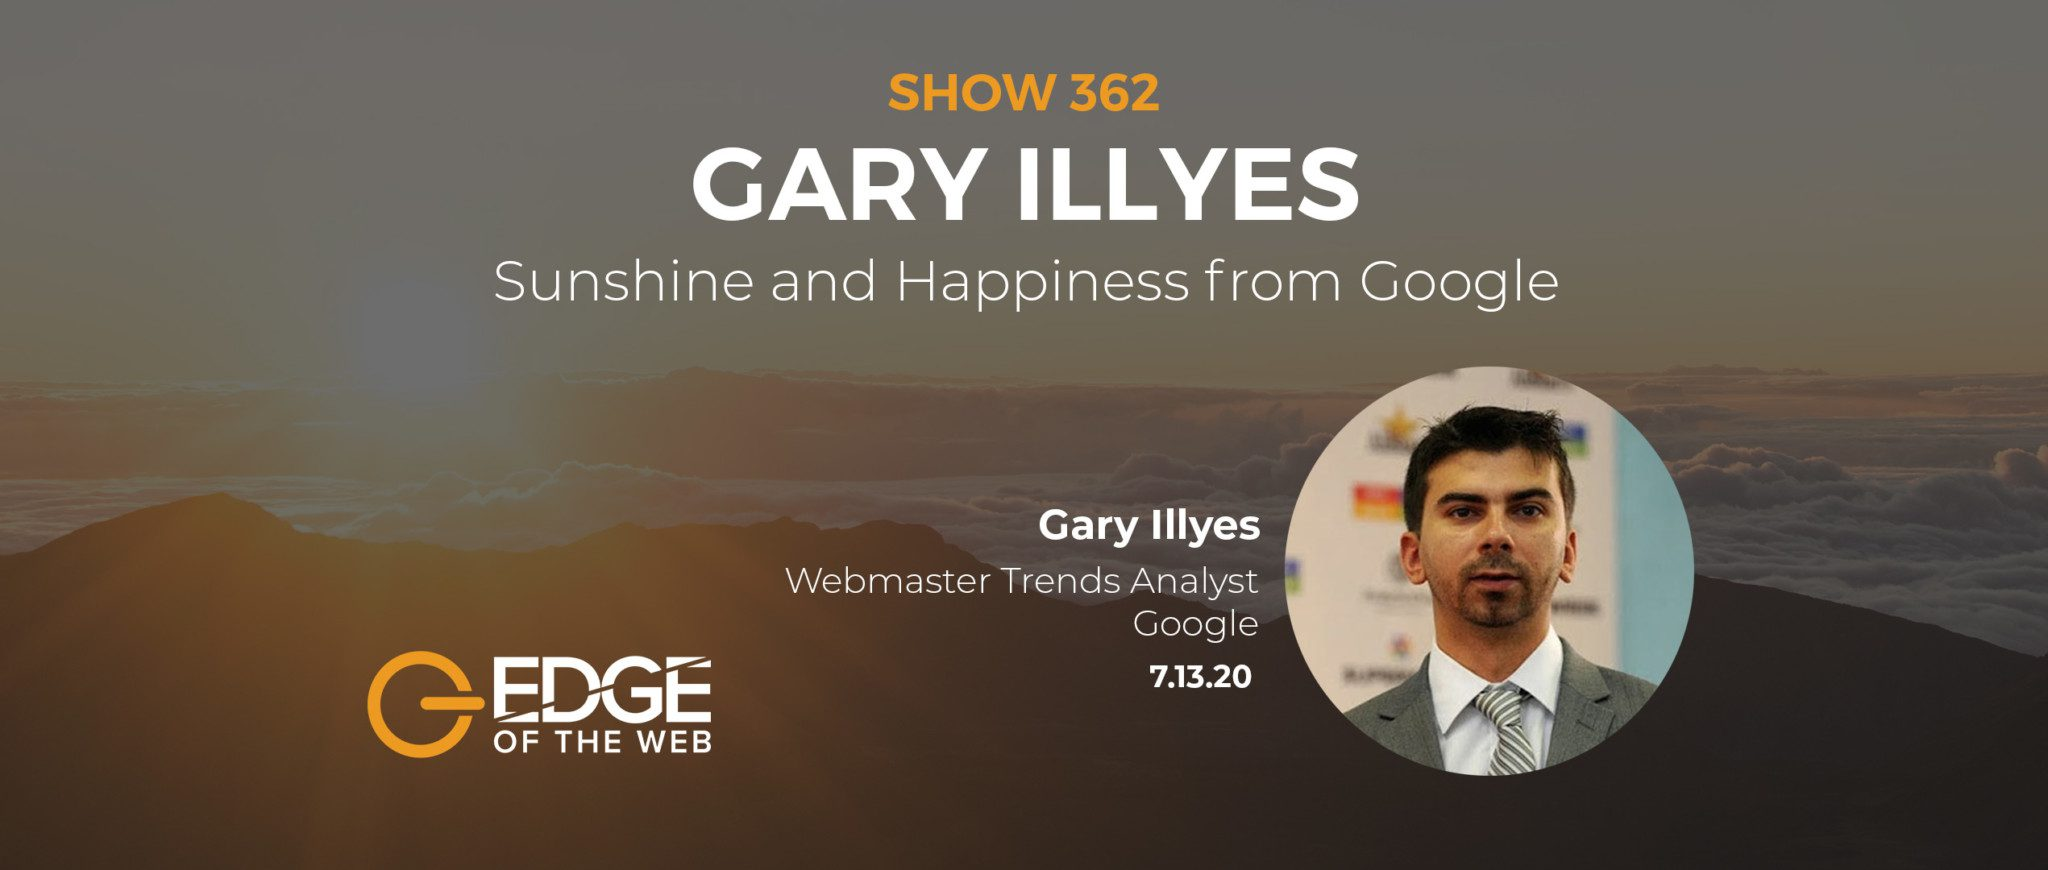 Gary Illyes EDGE EP362 Featured Image